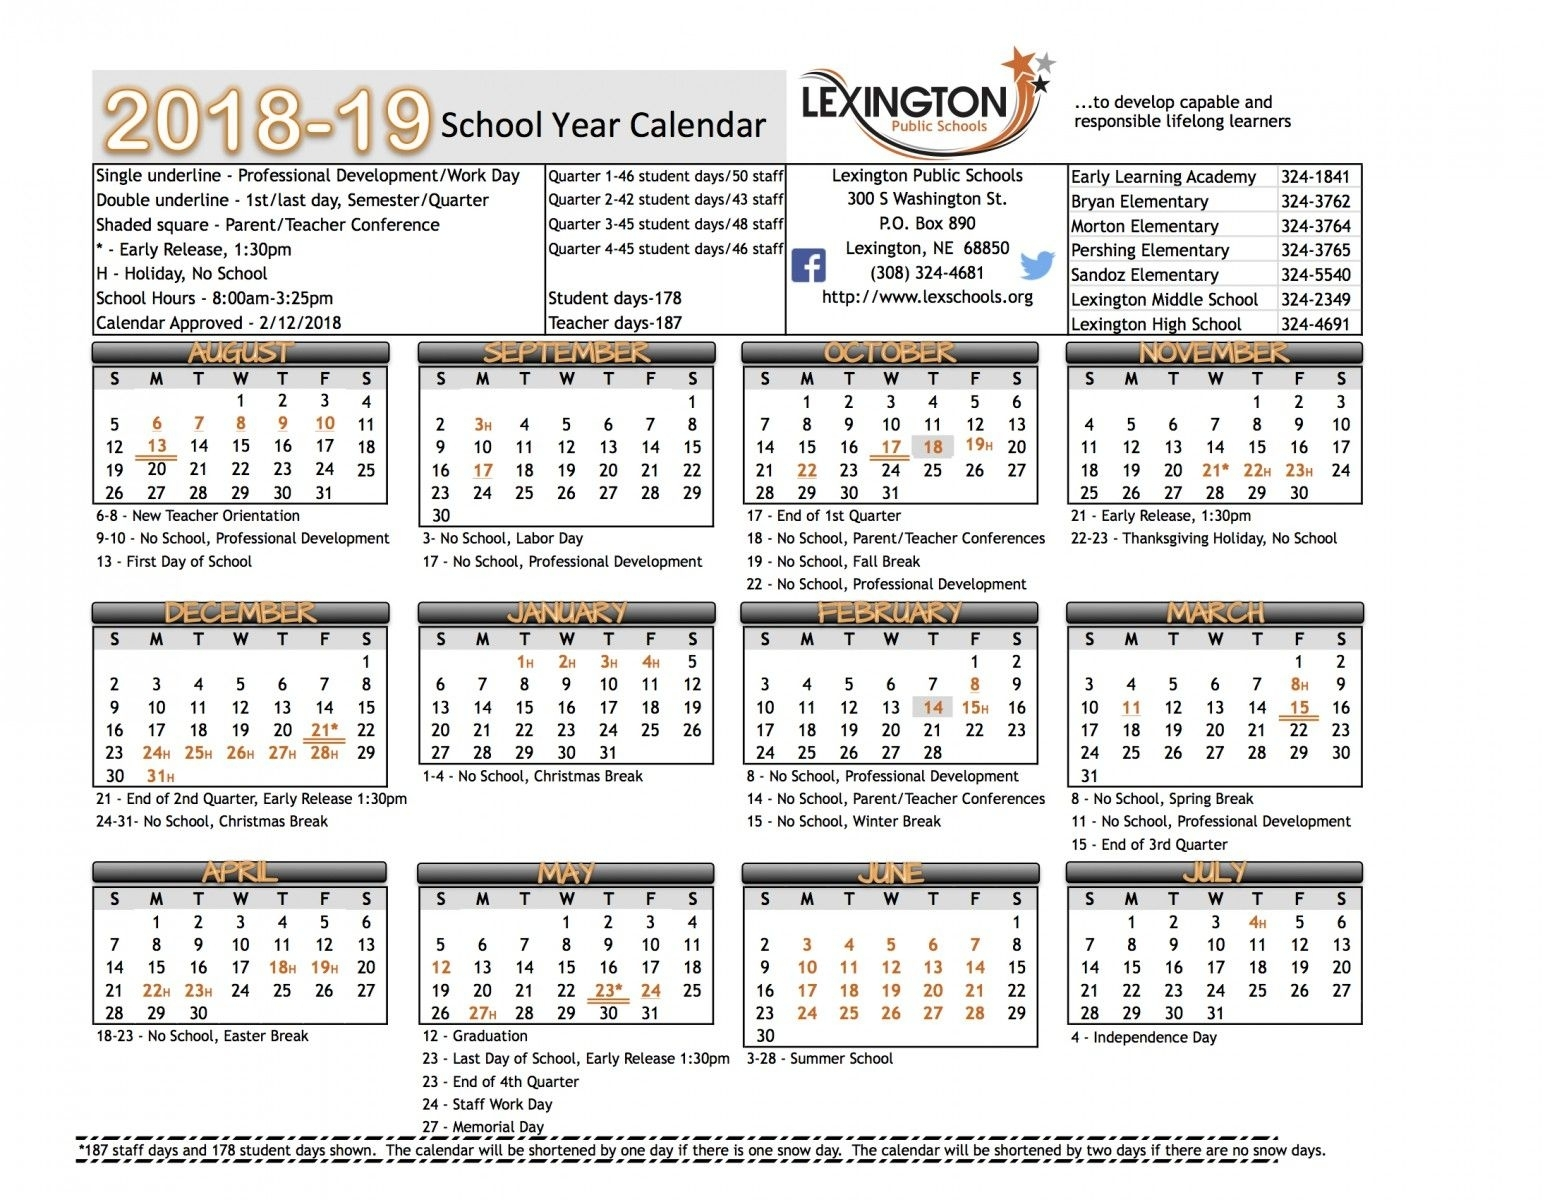 Pincalendar On Academic Calendar In 2019 | Academic